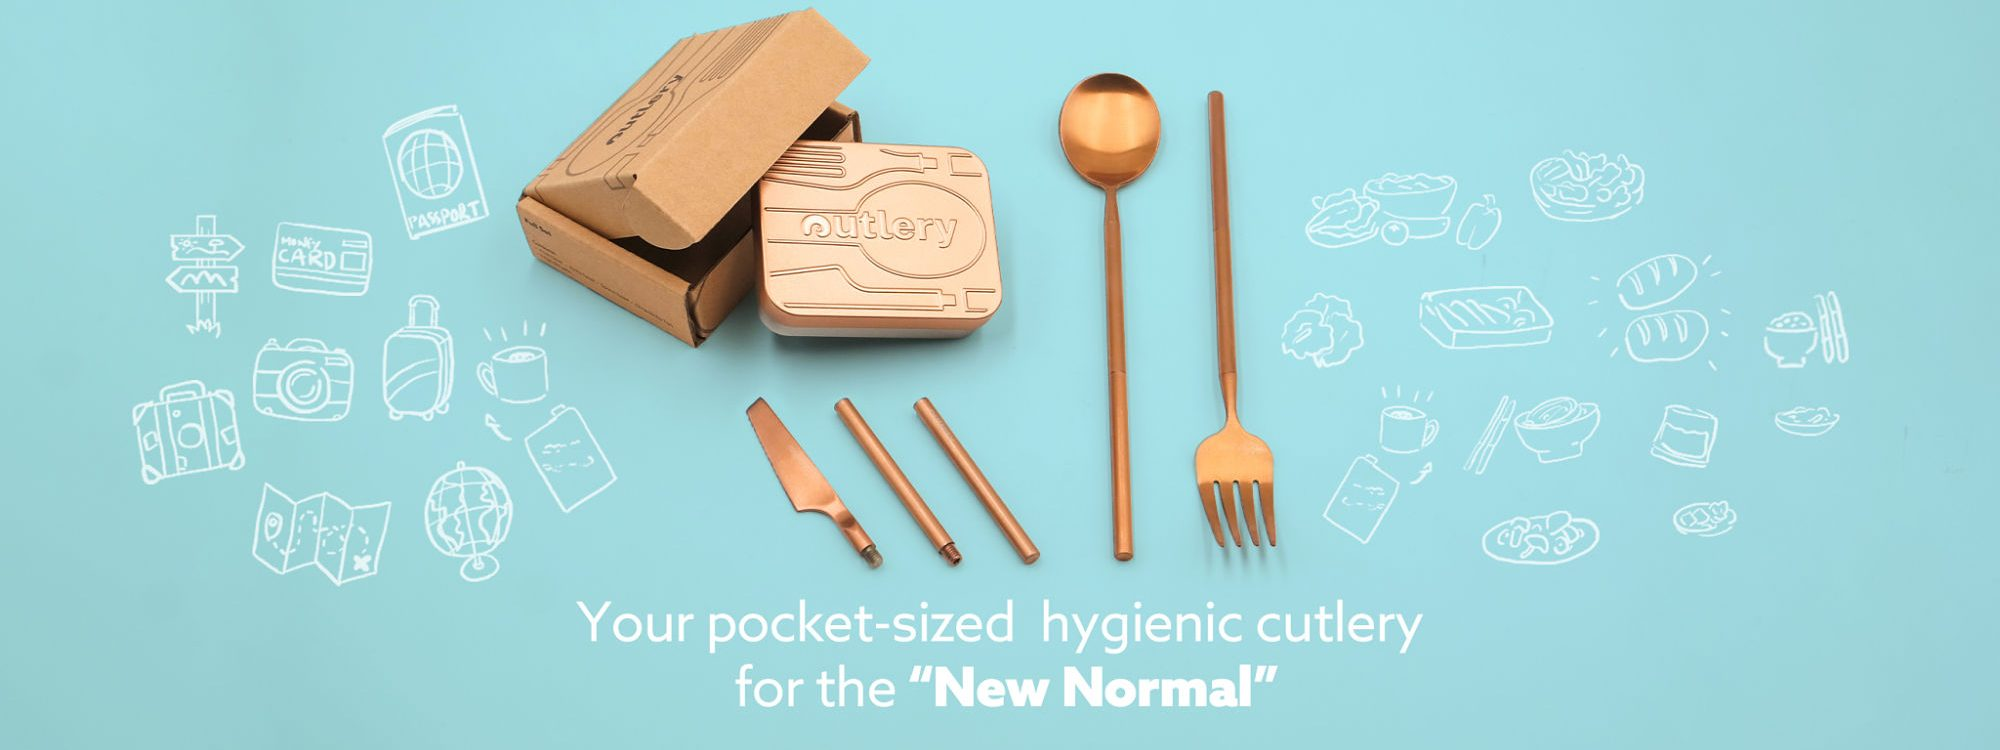 Outlery, sustainable, reusable, compact, travel, single-use, single-use plastic, cutlery, wooden utensils